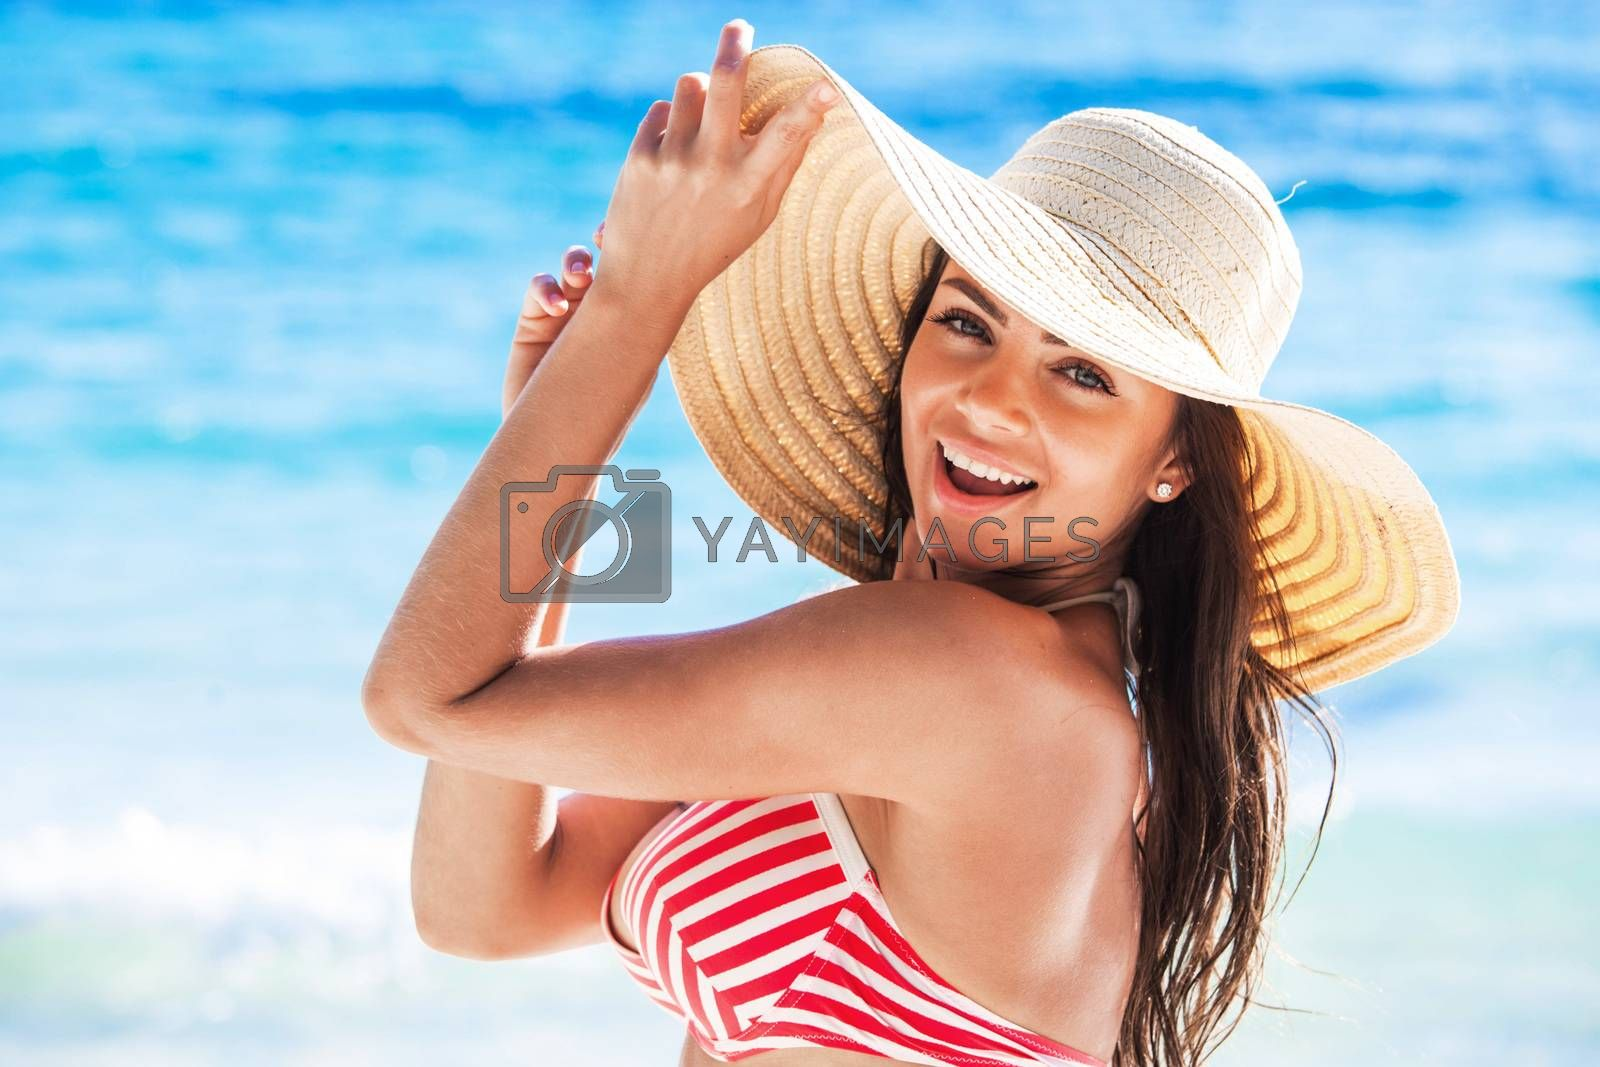 Beach woman relaxing on travel vacation smiling happy and cheerful in summer sun. Beautiful ?aucasian woman wearing white beach hat and bikini on tropical paradise beach.